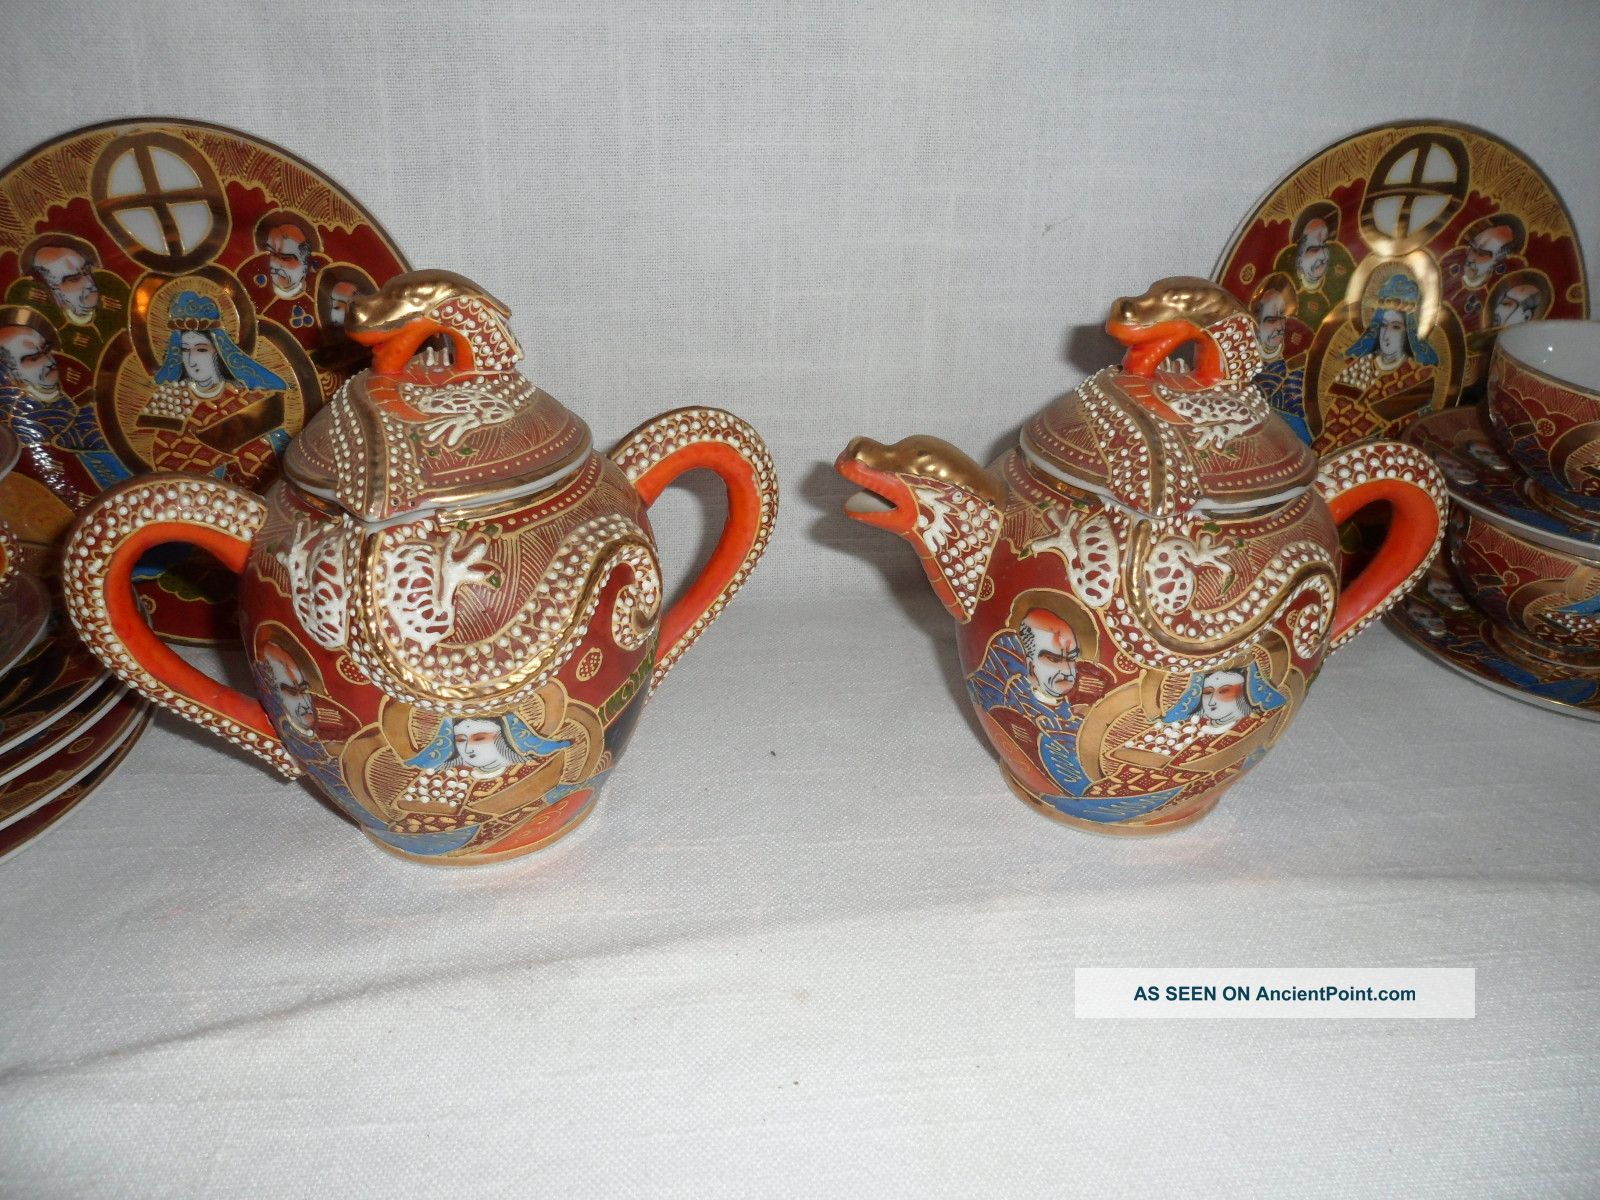 Antique Japanese Tea Sets With Dragon Dragon Ware Tea Set